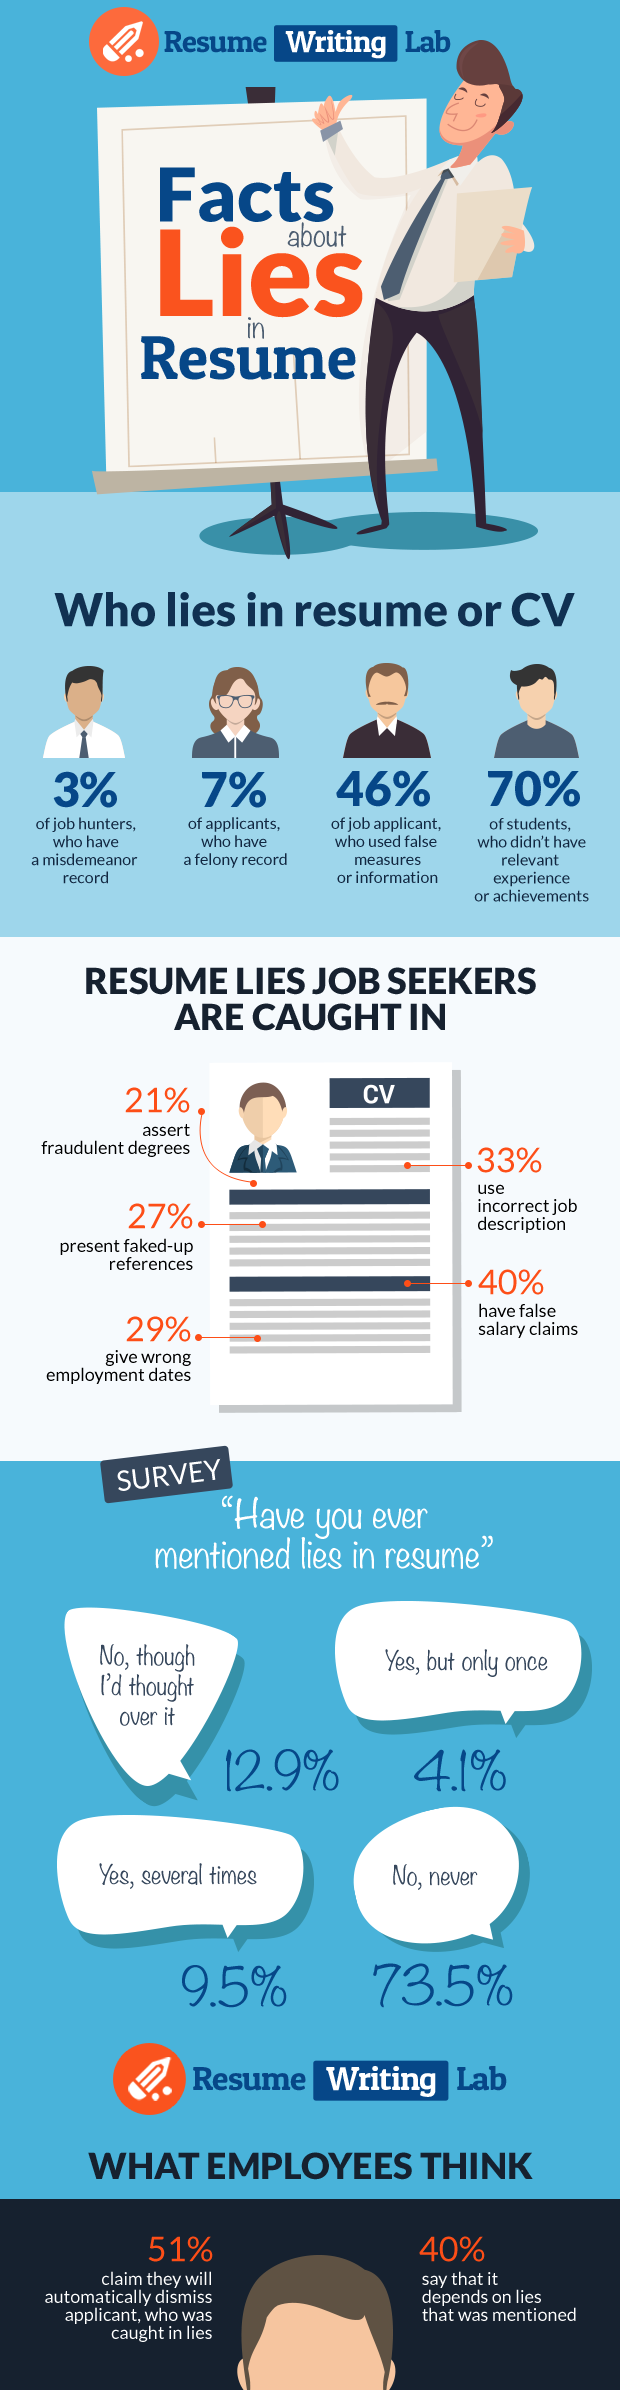 facts about lies in resume